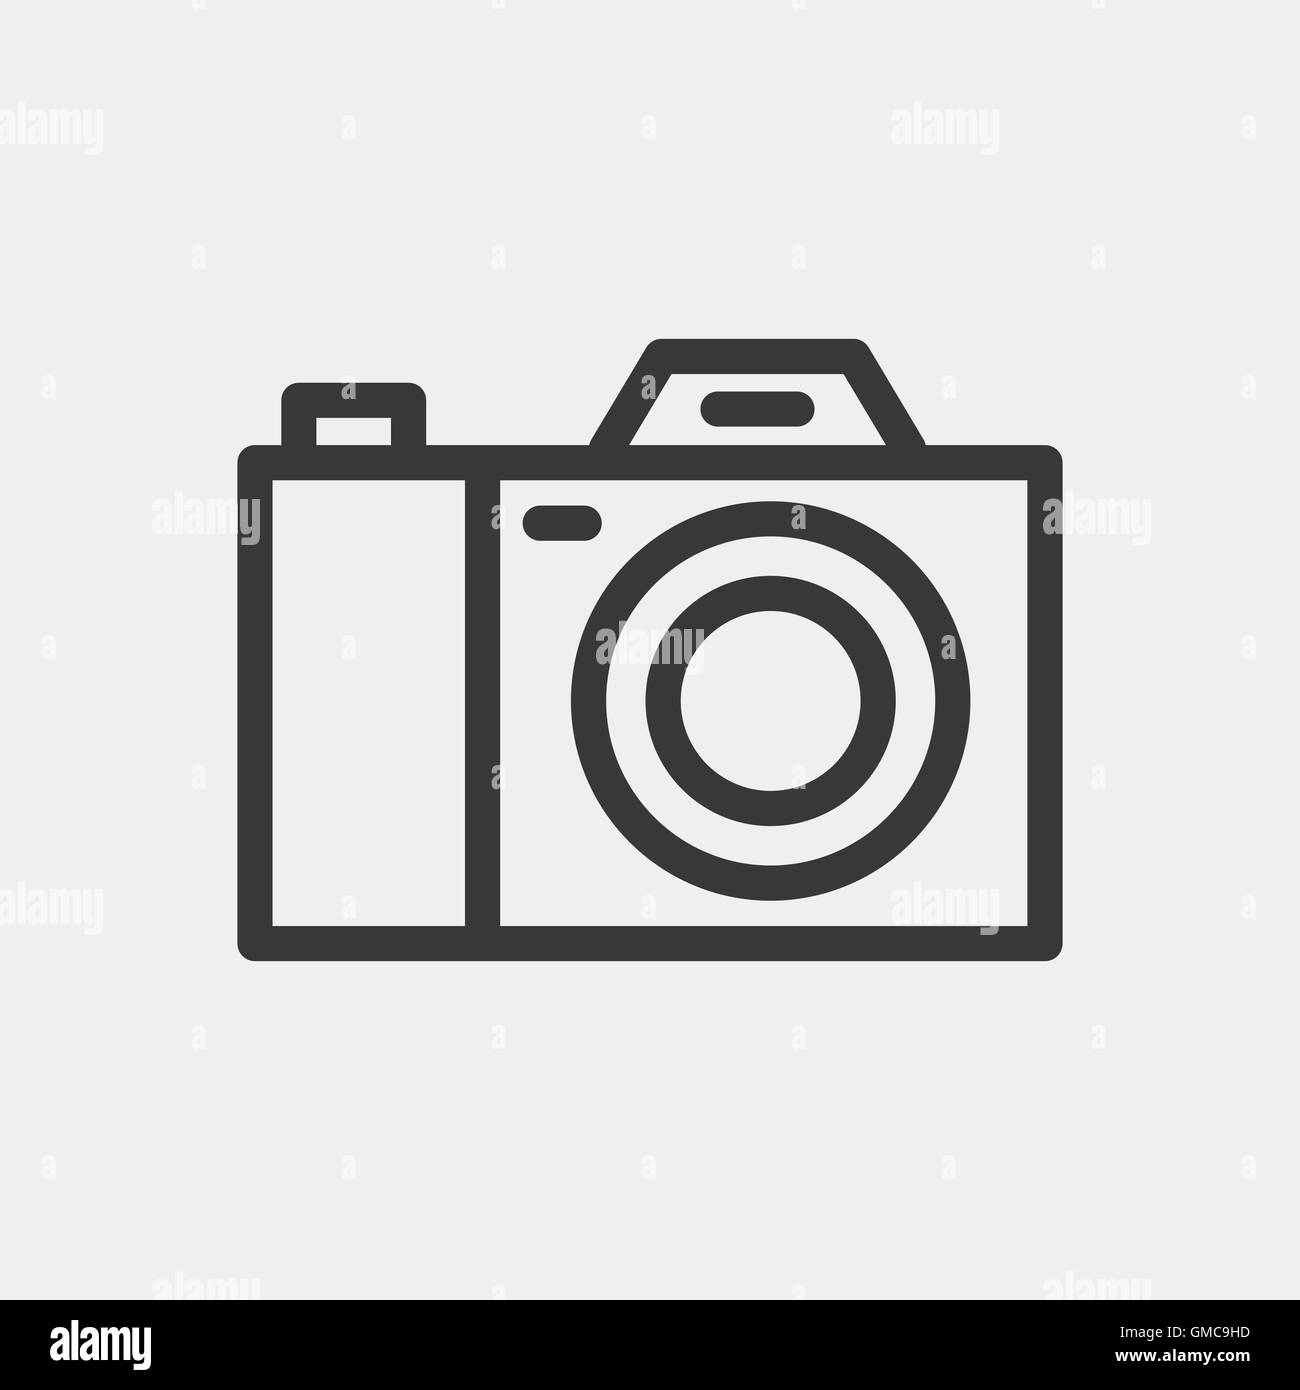 simple camera icon of brown outline for illustration